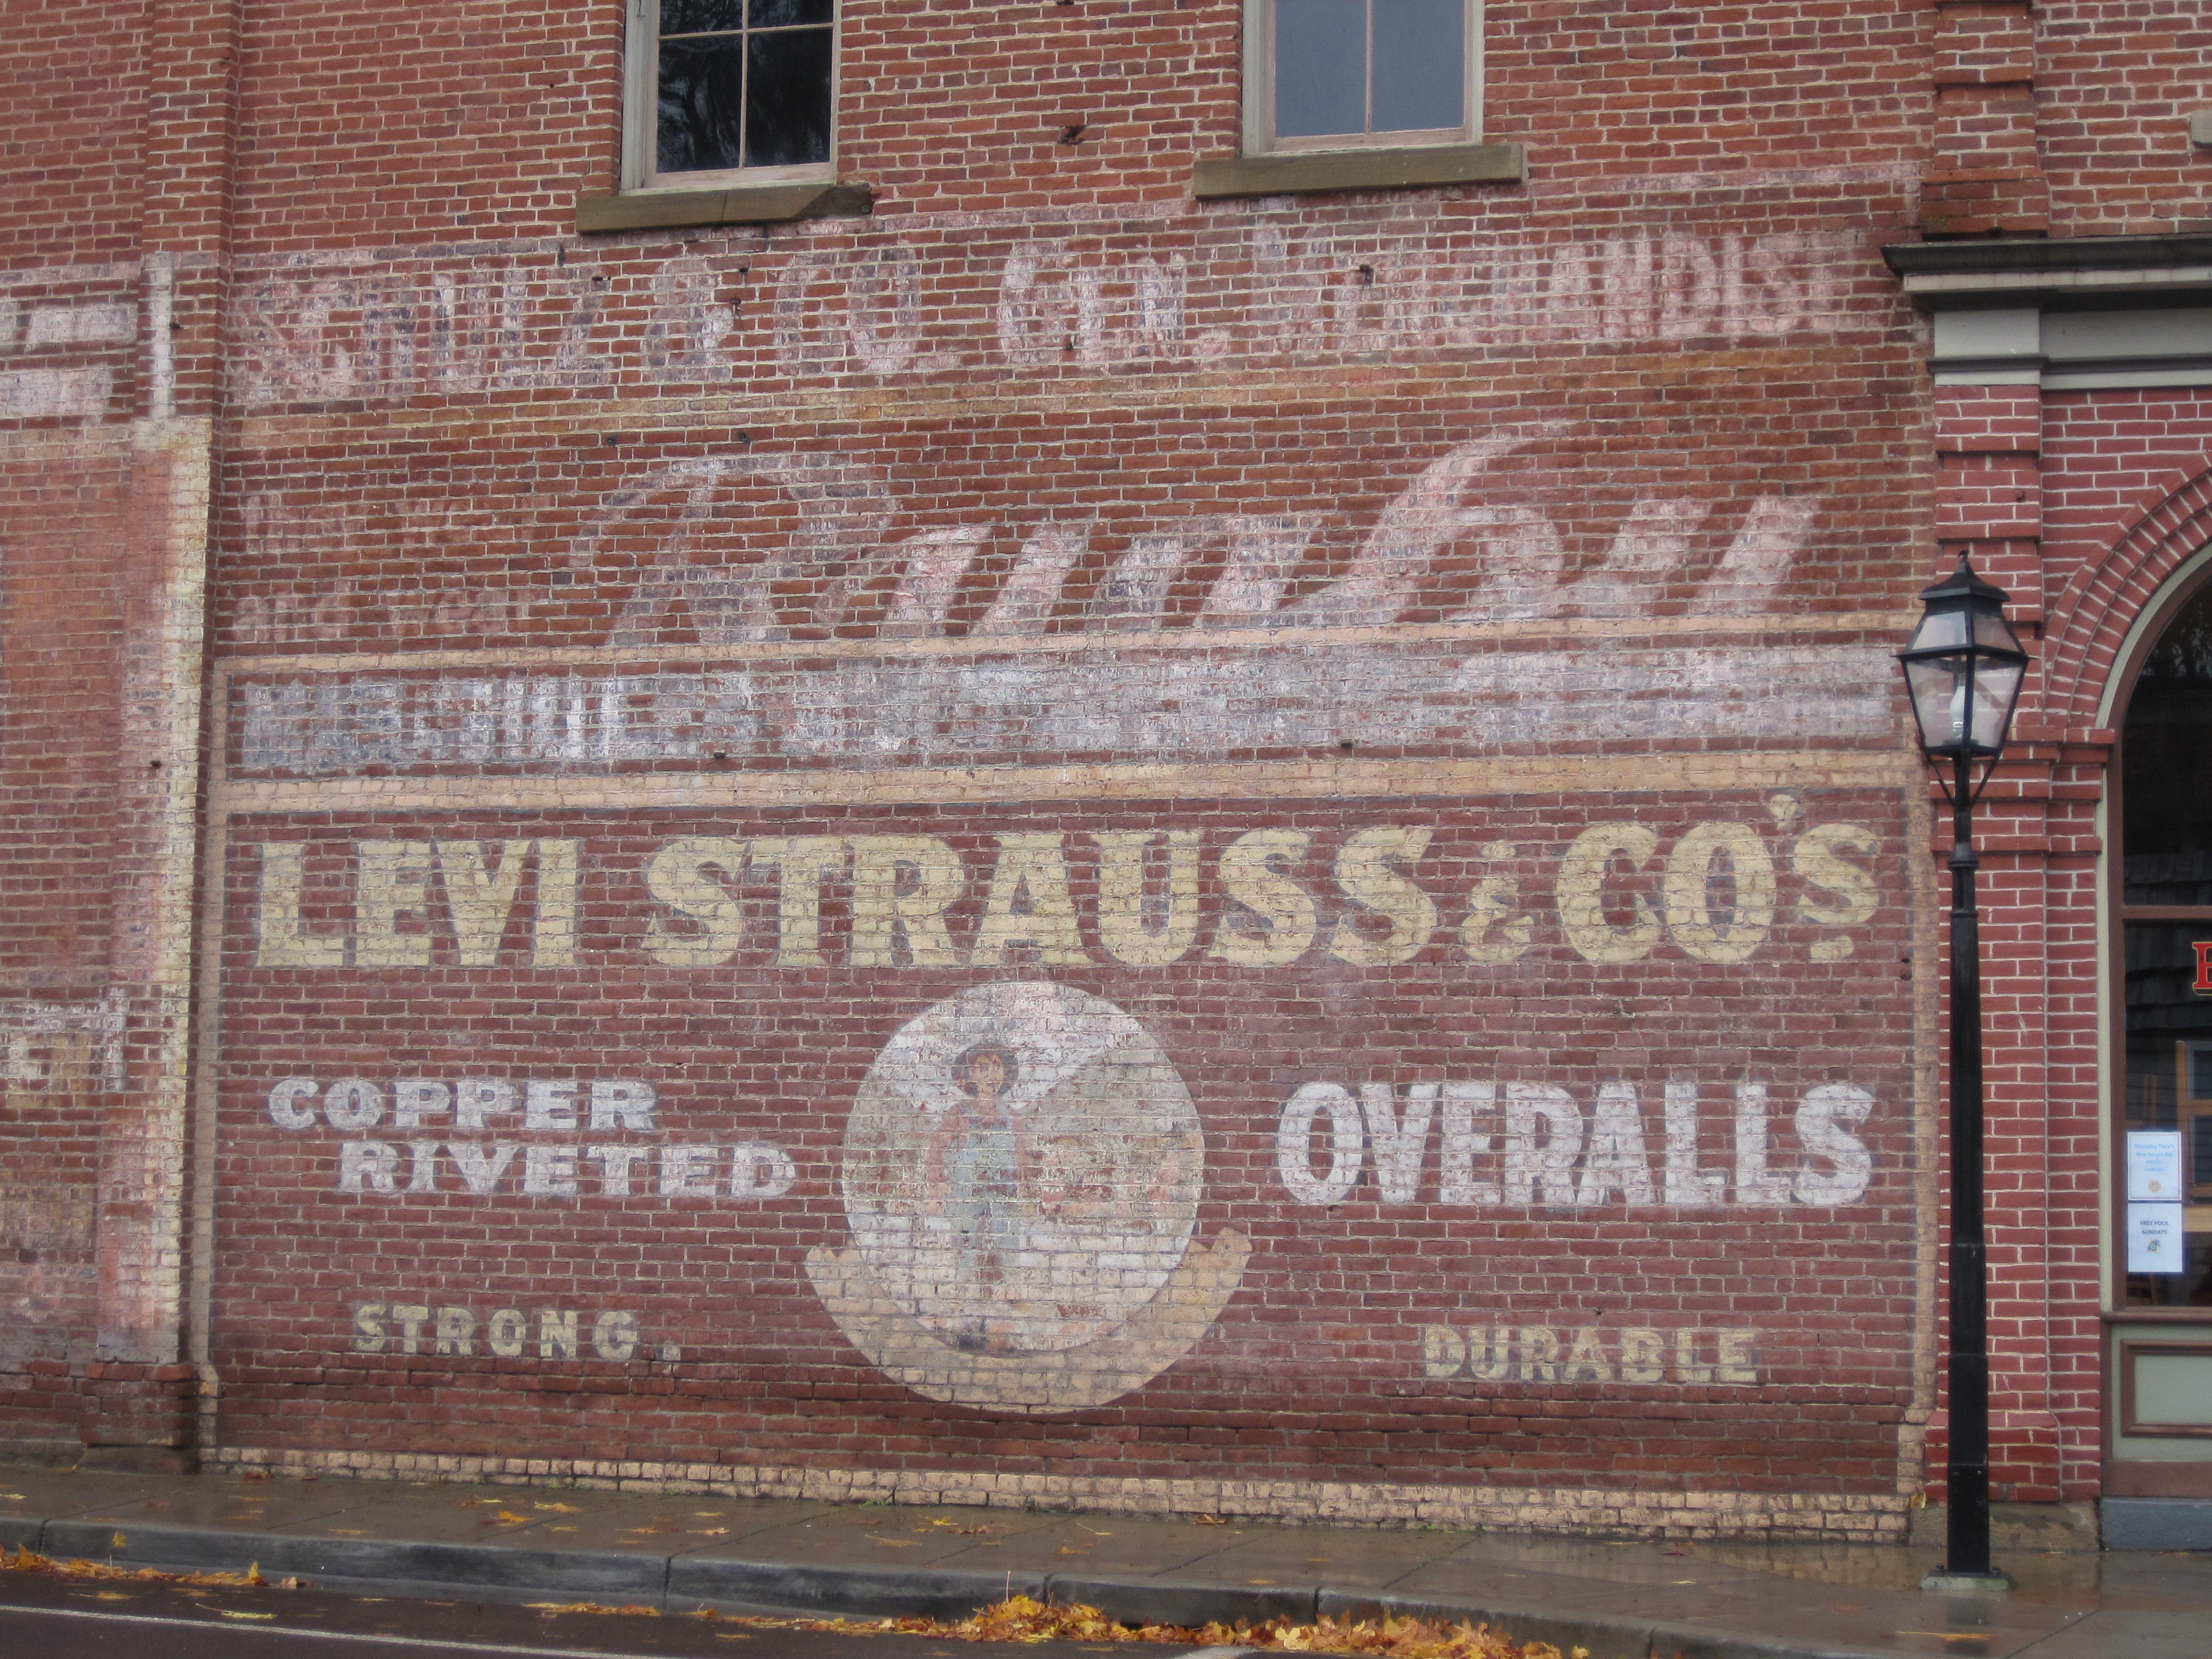 a history of the levis jeans You wear jeans you live in levi's® in 1853, levi strauss, an immigrant  from bavaria, opened a dry goods company in san francisco at the height of the .